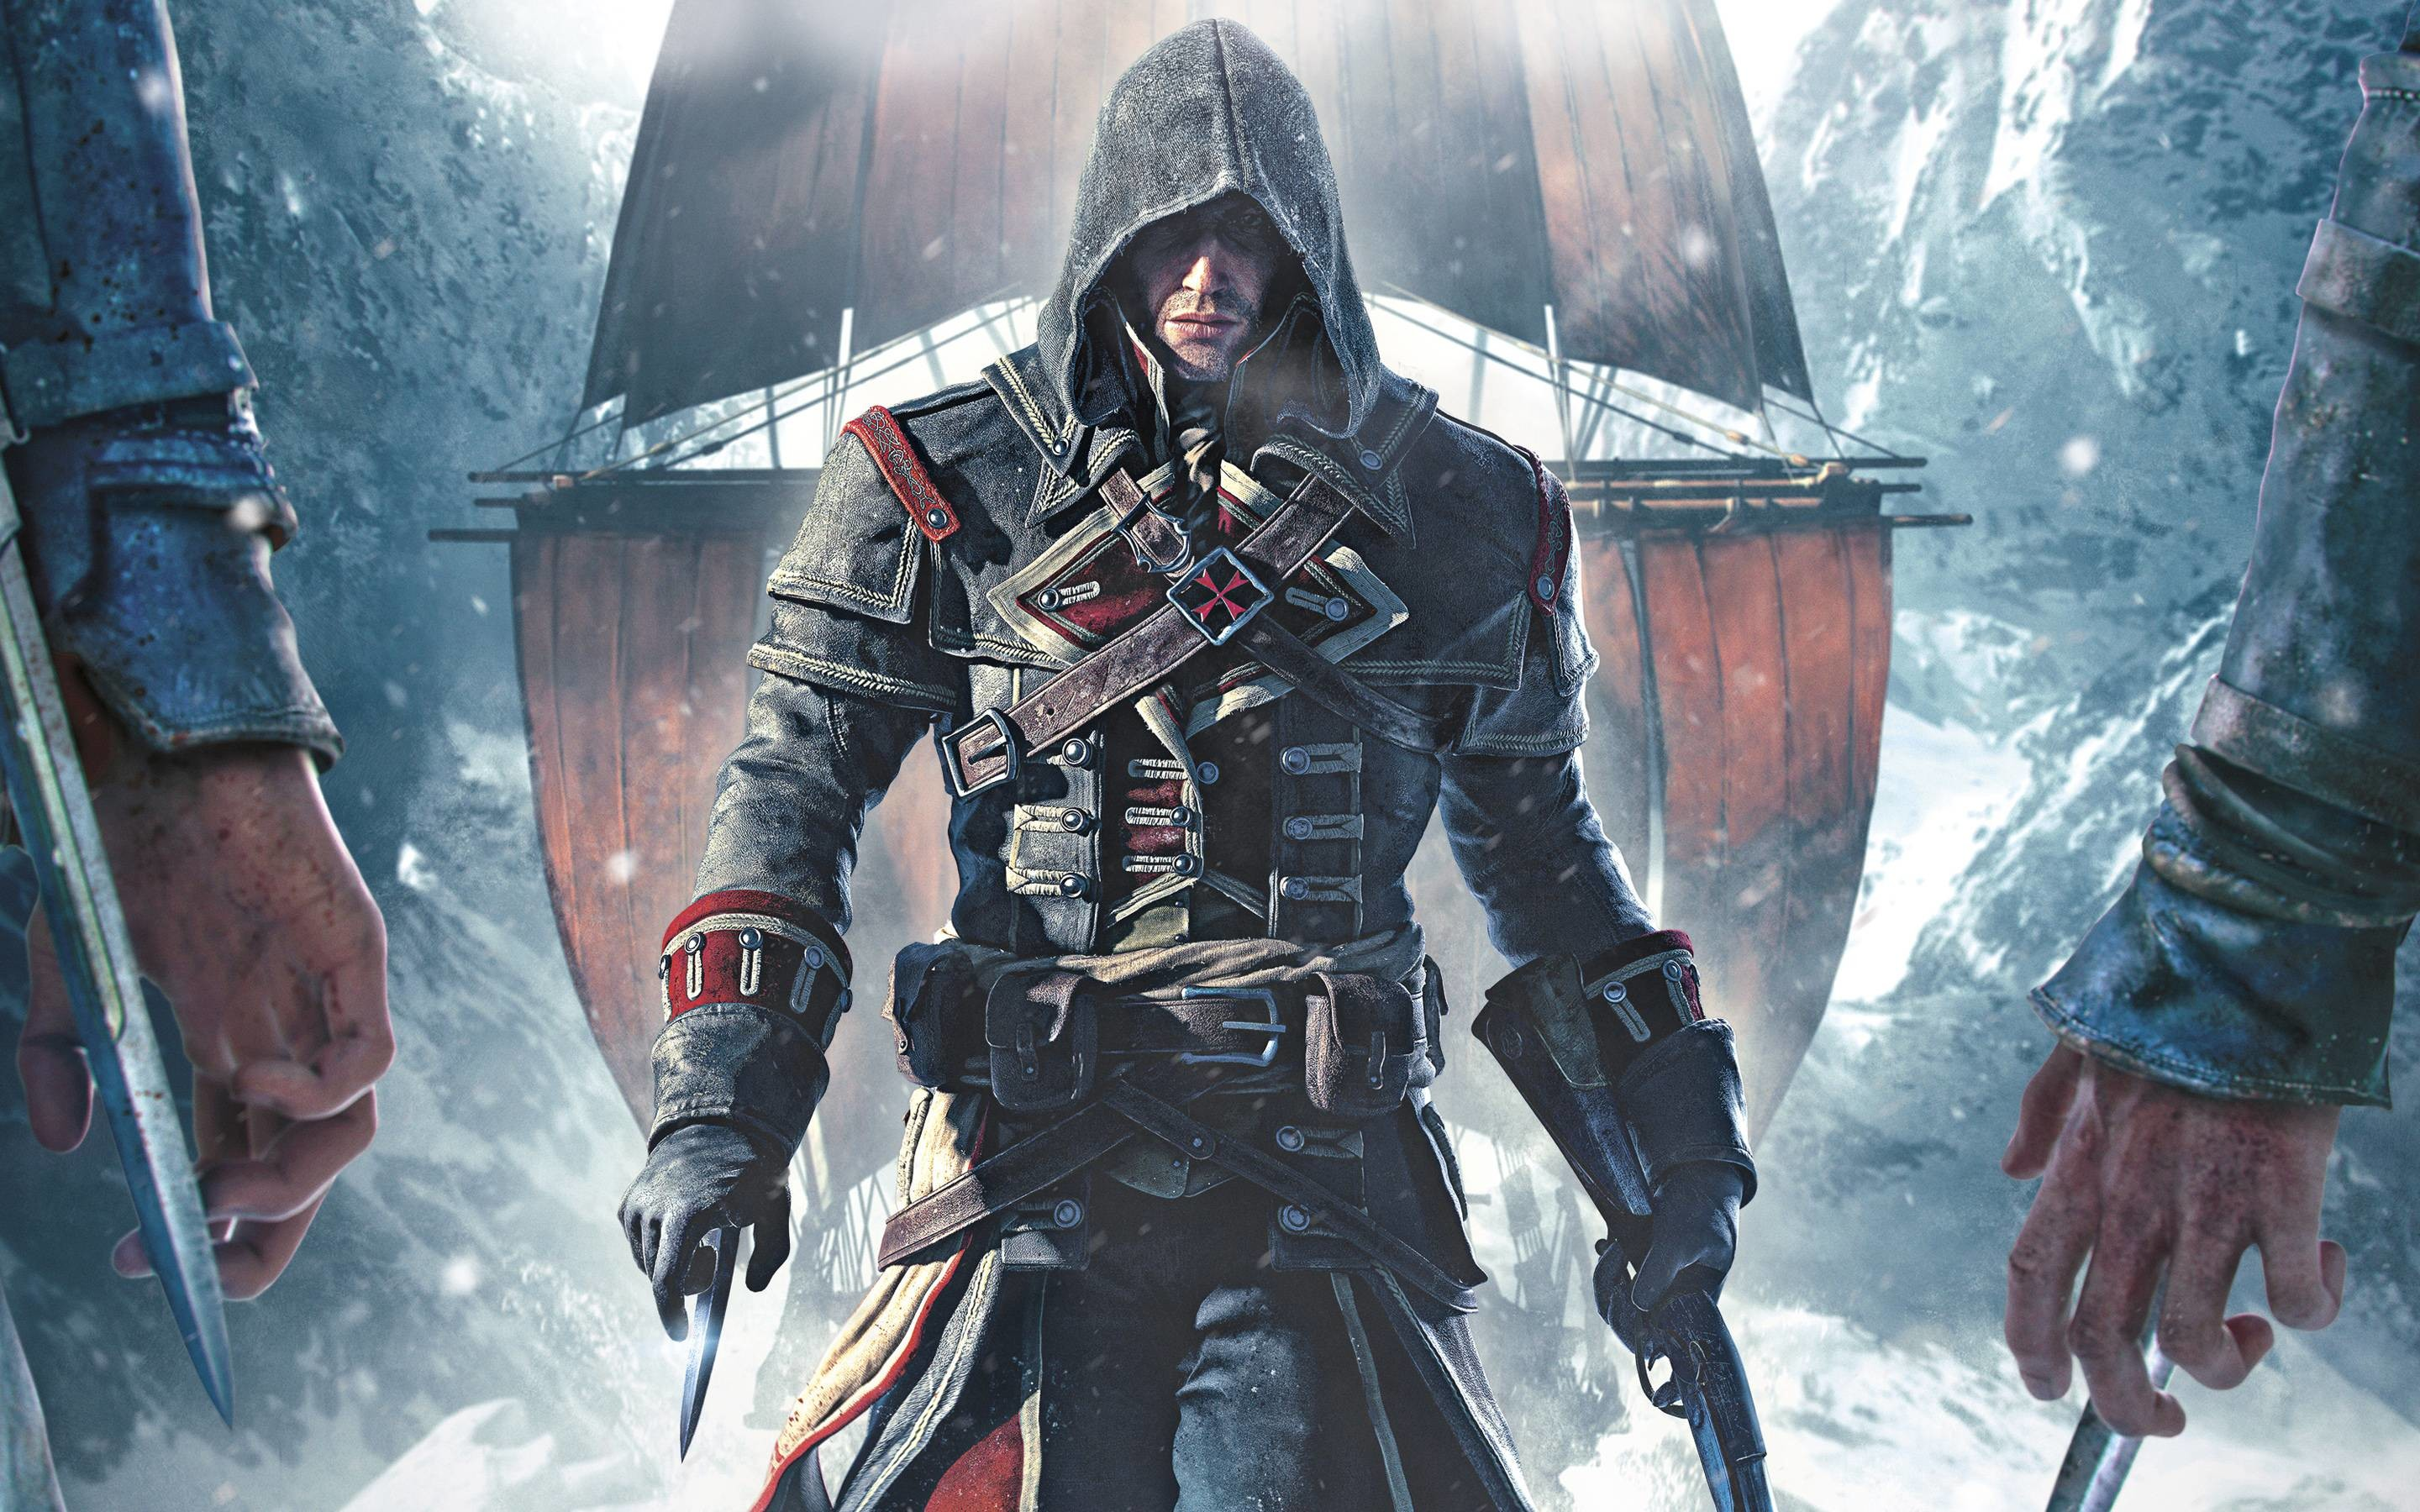 2880x1800 39 Assassin's Creed: Rogue Wallpapers | Assassin's Creed: Rogue .